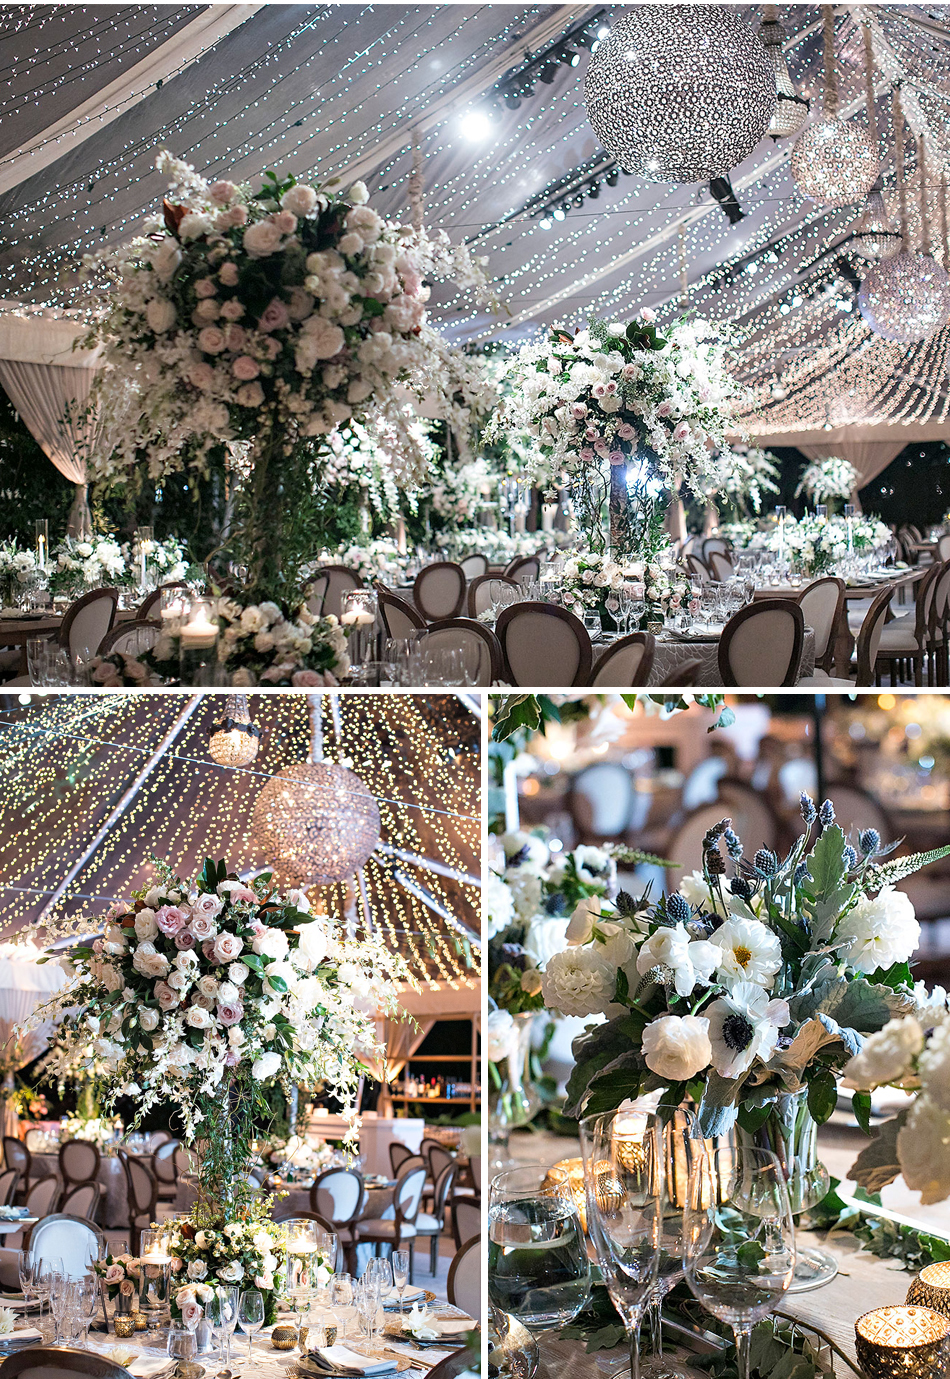 internationaleventcompany.com | International Event Company Los Angeles Wedding Planner and Designer | Weddings at Hotel Bel Air | Luxury Event Planners in Southern California _ (3).jpg